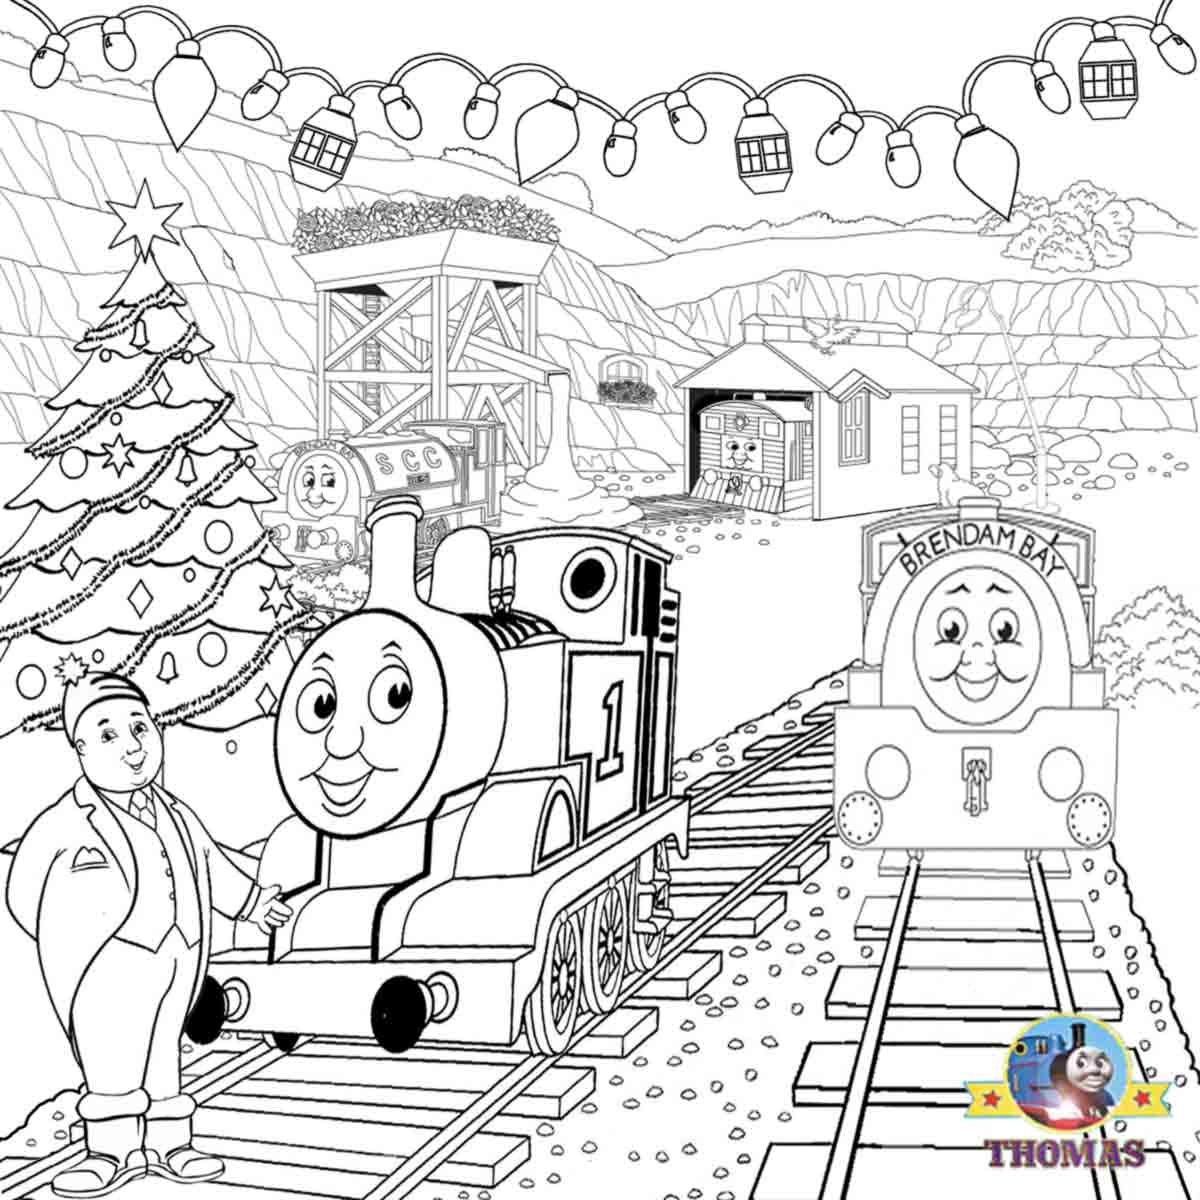 Xmas Coloring Pages Online With FREE Christmas For Kids Printable Thomas Snow